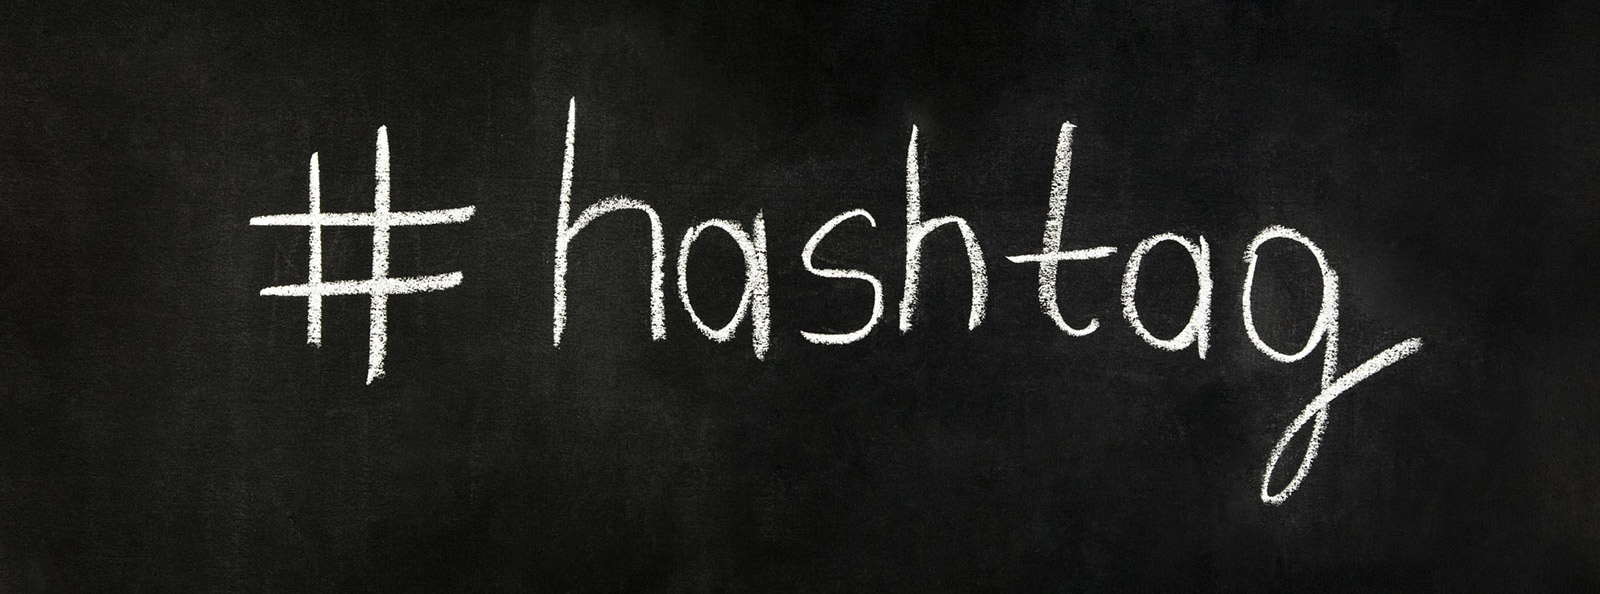 Your hashtag